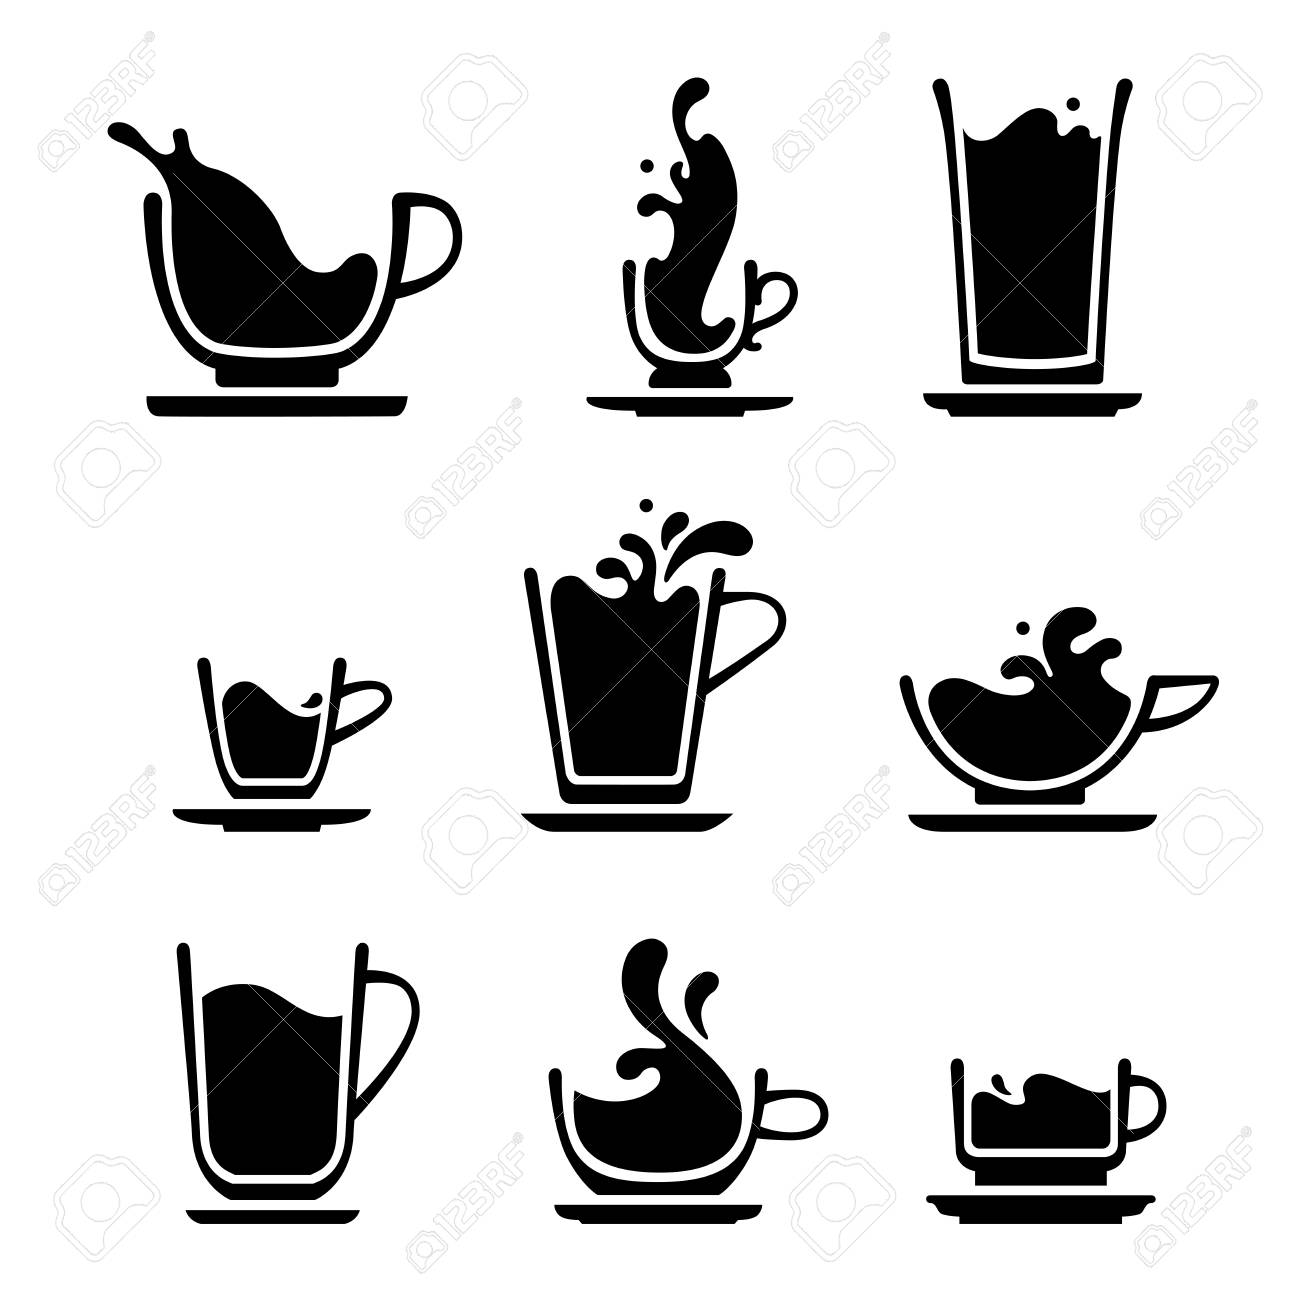 set of splash silhouette cup of tea coffee water milk or juice royalty free cliparts vectors and stock illustration image 97275520 123rf com